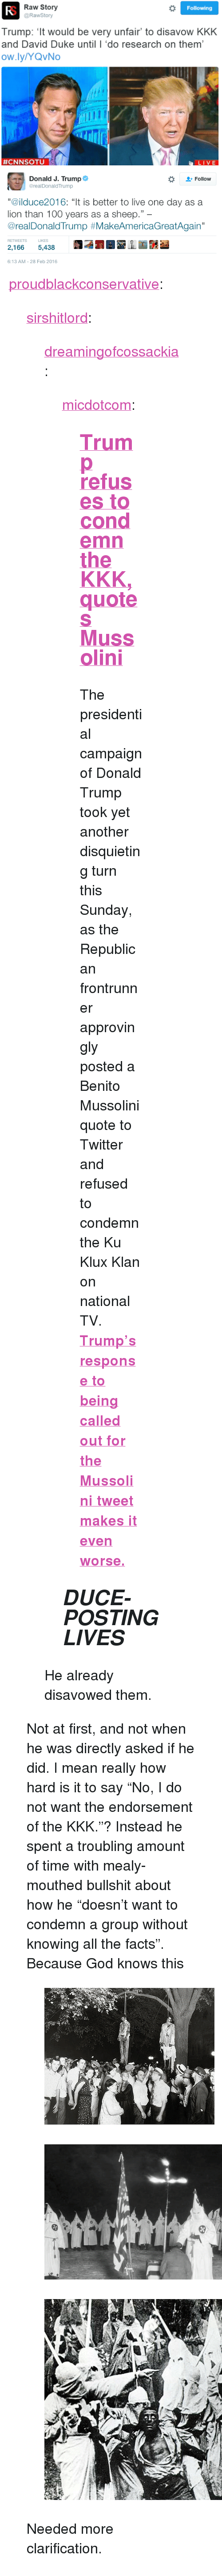 """Anaconda, Donald Trump, and Facts: Raw Story  @RawStory  Following  Trump: 't would be very unfair to disavow KKK  and David Duke until I 'do research on them'  ow.ly/YQvNo  #CNNSOTU  LIVE   Donald J. Trump  2- Follow  @realDonaldTrump  """"@ilduce2016: """"It is better to live one day as a  lion than 100 years as a sheep.""""  @realDonaldTrump #MakeAmericaGreatAgain""""  RETWEETS LIKES  2,1665,438  6:13 AM-28 Feb 2016 <p><a href=""""https://proudblackconservative.tumblr.com/post/140161143379/sirshitlord-dreamingofcossackia"""" class=""""tumblr_blog"""">proudblackconservative</a>:</p>  <blockquote><p><a class=""""tumblr_blog"""" href=""""http://sirshitlord.tumblr.com/post/140160662031"""">sirshitlord</a>:</p> <blockquote> <p><a class=""""tumblr_blog"""" href=""""http://dreamingofcossackia.tumblr.com/post/140159100619"""">dreamingofcossackia</a>:</p> <blockquote> <p><a class=""""tumblr_blog"""" href=""""http://micdotcom.tumblr.com/post/140156220061"""">micdotcom</a>:</p> <blockquote> <h2><b><a href=""""http://mic.com/articles/136447/donald-trump-approvingly-retweets-mussolini-quote-refuses-to-condemn-kkk?utm_source=policymicTBLR&utm_medium=main&utm_campaign=social"""">Trump refuses to condemn the KKK, quotes Mussolini</a></b></h2> <p>The presidential campaign of Donald Trump took yet another disquieting turn this Sunday, as the Republican frontrunner approvingly posted a Benito Mussolini quote to Twitter and refused to condemn the Ku Klux Klan on national TV. <b><a href=""""http://mic.com/articles/136447/donald-trump-approvingly-retweets-mussolini-quote-refuses-to-condemn-kkk?utm_source=policymicTBLR&utm_medium=main&utm_campaign=social"""">Trump's response to being called out for the Mussolini tweet makes it even worse.</a></b></p> </blockquote> <h2><b><i>DUCE-POSTING LIVES</i></b></h2> </blockquote> <p>He already disavowed them.</p> </blockquote>  <p>  Not at first, and not when he was directly asked if he did. I mean really how hard is it to say """"No, I do not want the endorsement of the KKK.""""? Instead he spent a troubling amount of tim"""